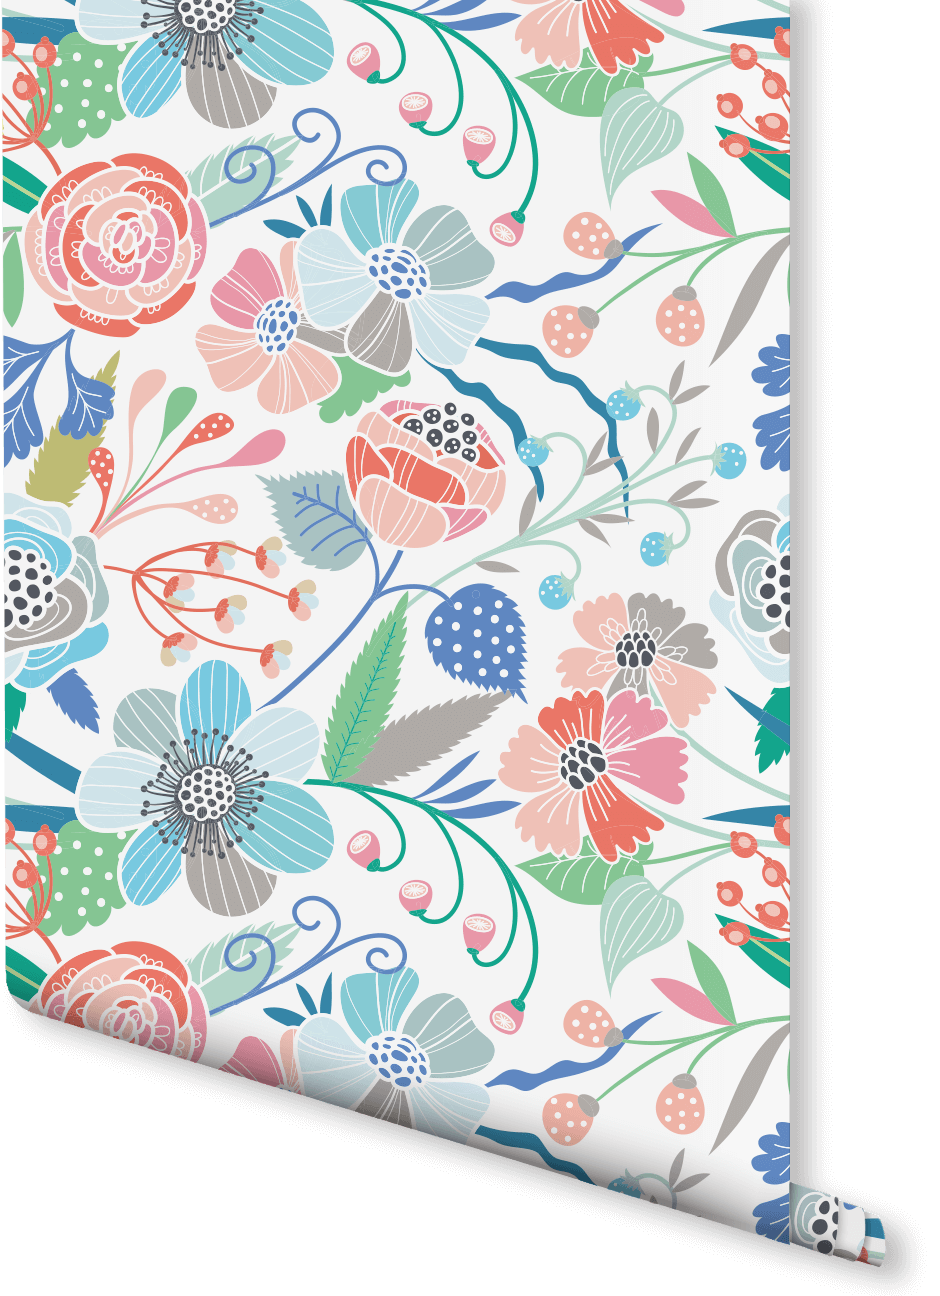 Get Lost Amongst A Meadow Of Pastel Coloured Flowers With This Floral  Wallpaper Design. The Multi Coloured Flowers Look Vibrant Offset Against  The Plain ...